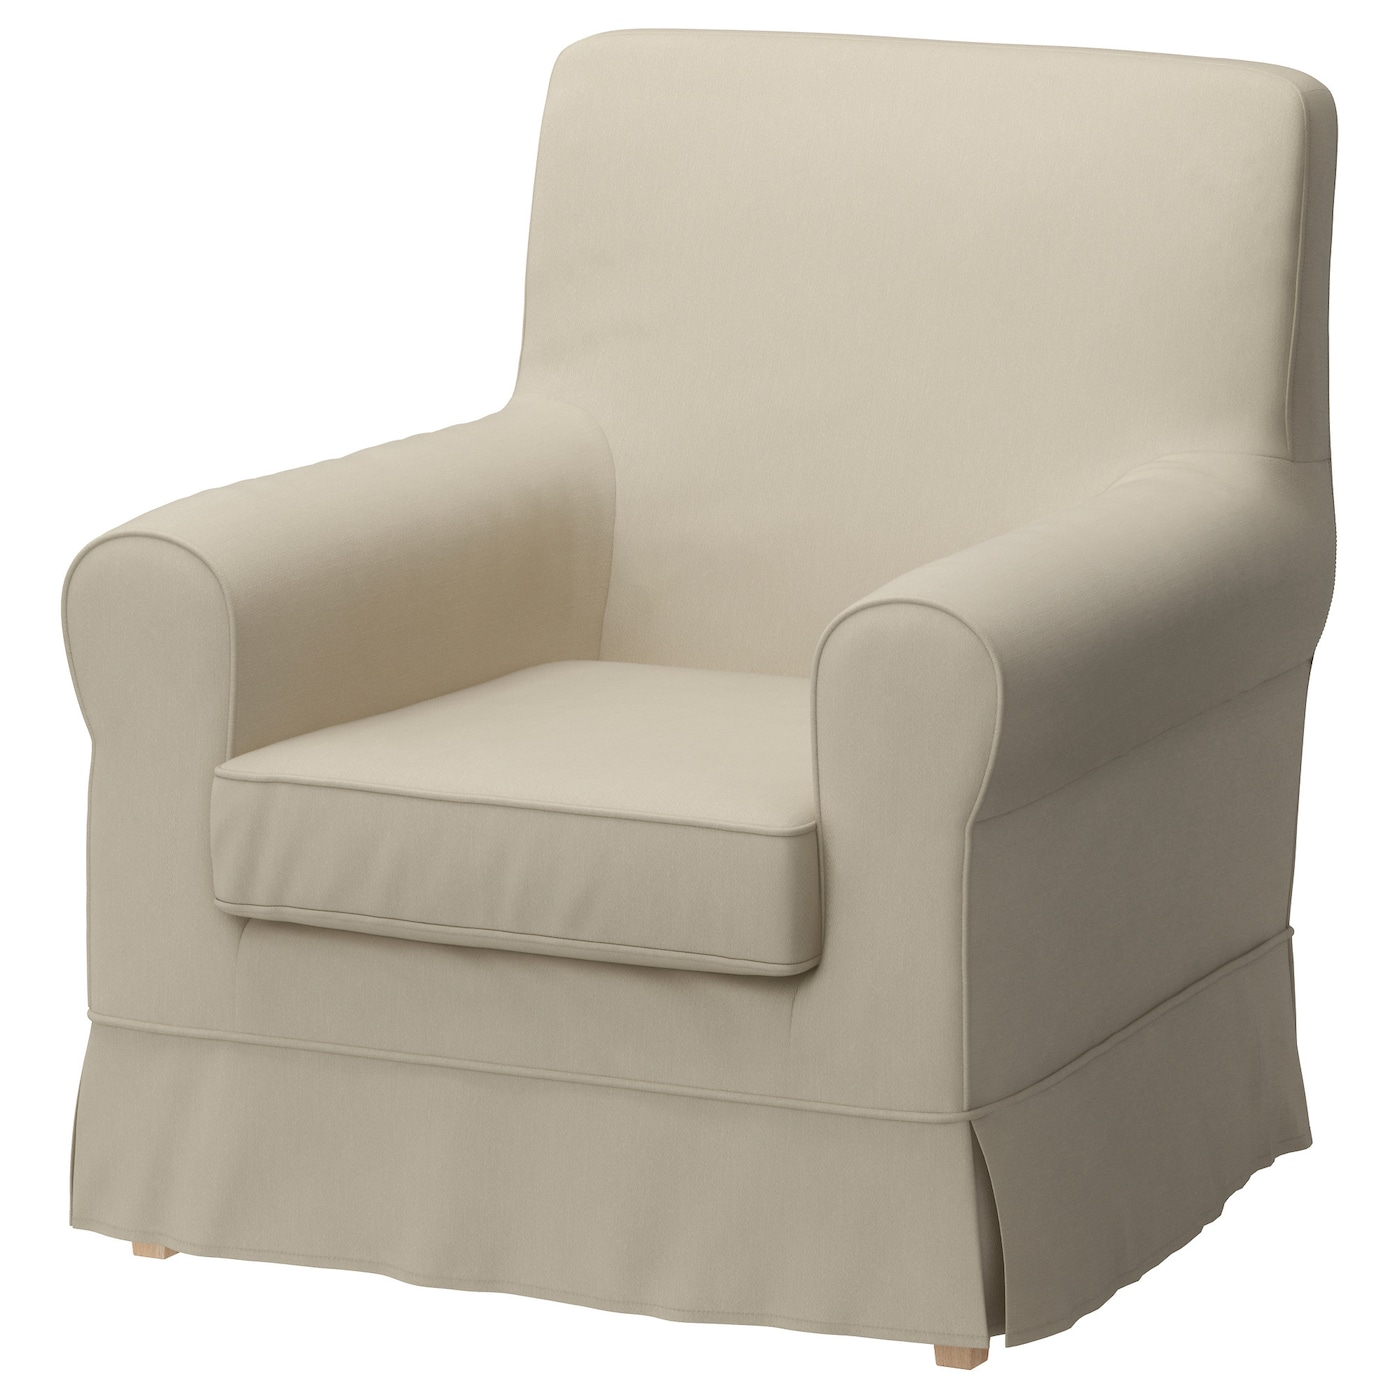 IKEA JENNYLUND hoes fauteuil